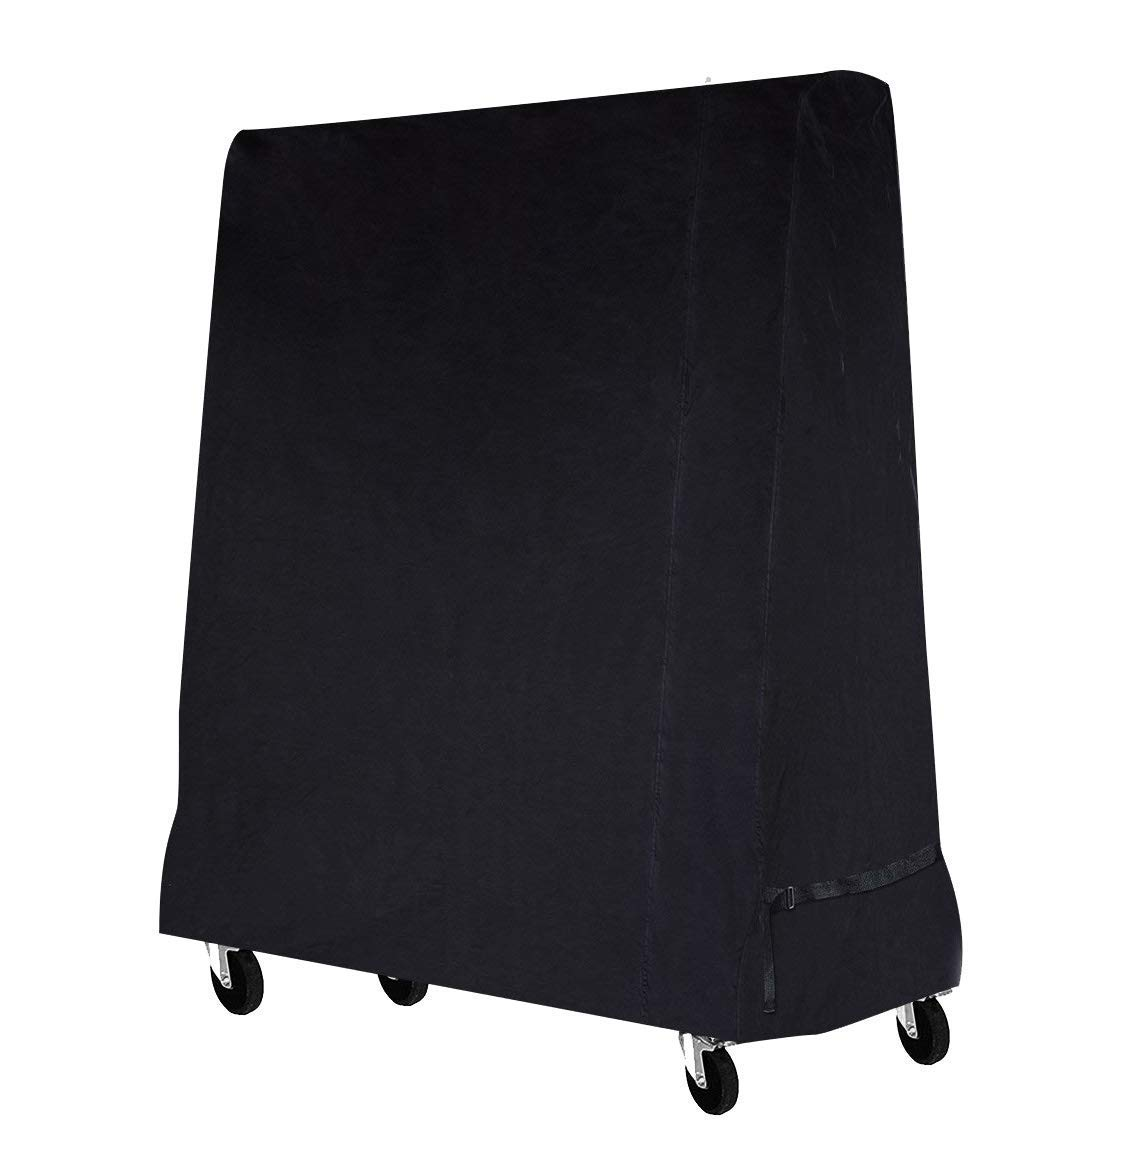 SIRUITON Table Tennis Table Cover Oxford Polyester Indoor/Outdoor Ping Pong Cover Black 165 x 70 x 185 cm